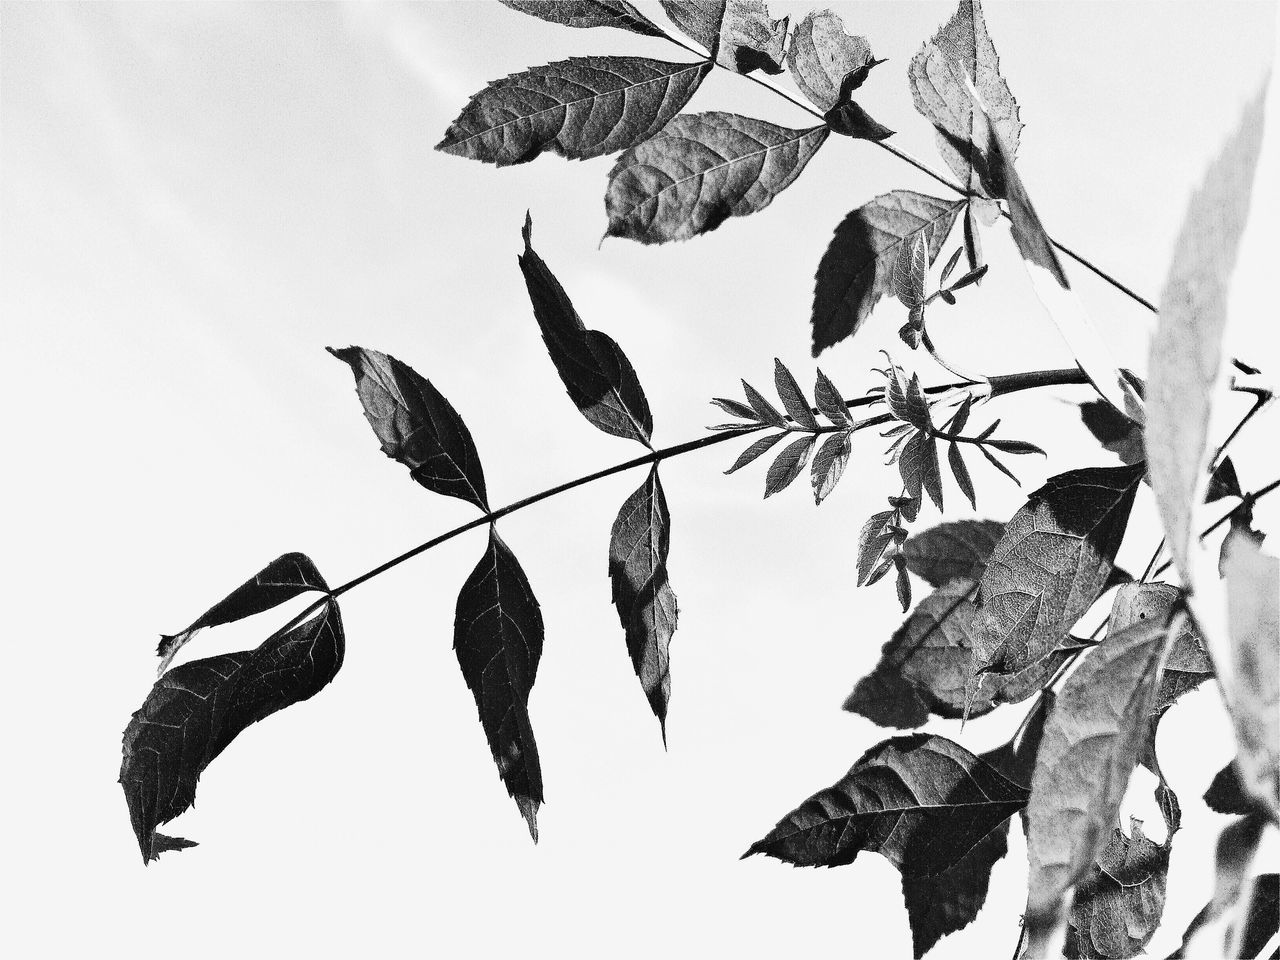 nature, no people, outdoors, leaf, day, low angle view, beauty in nature, sky, fragility, animal themes, white background, bird